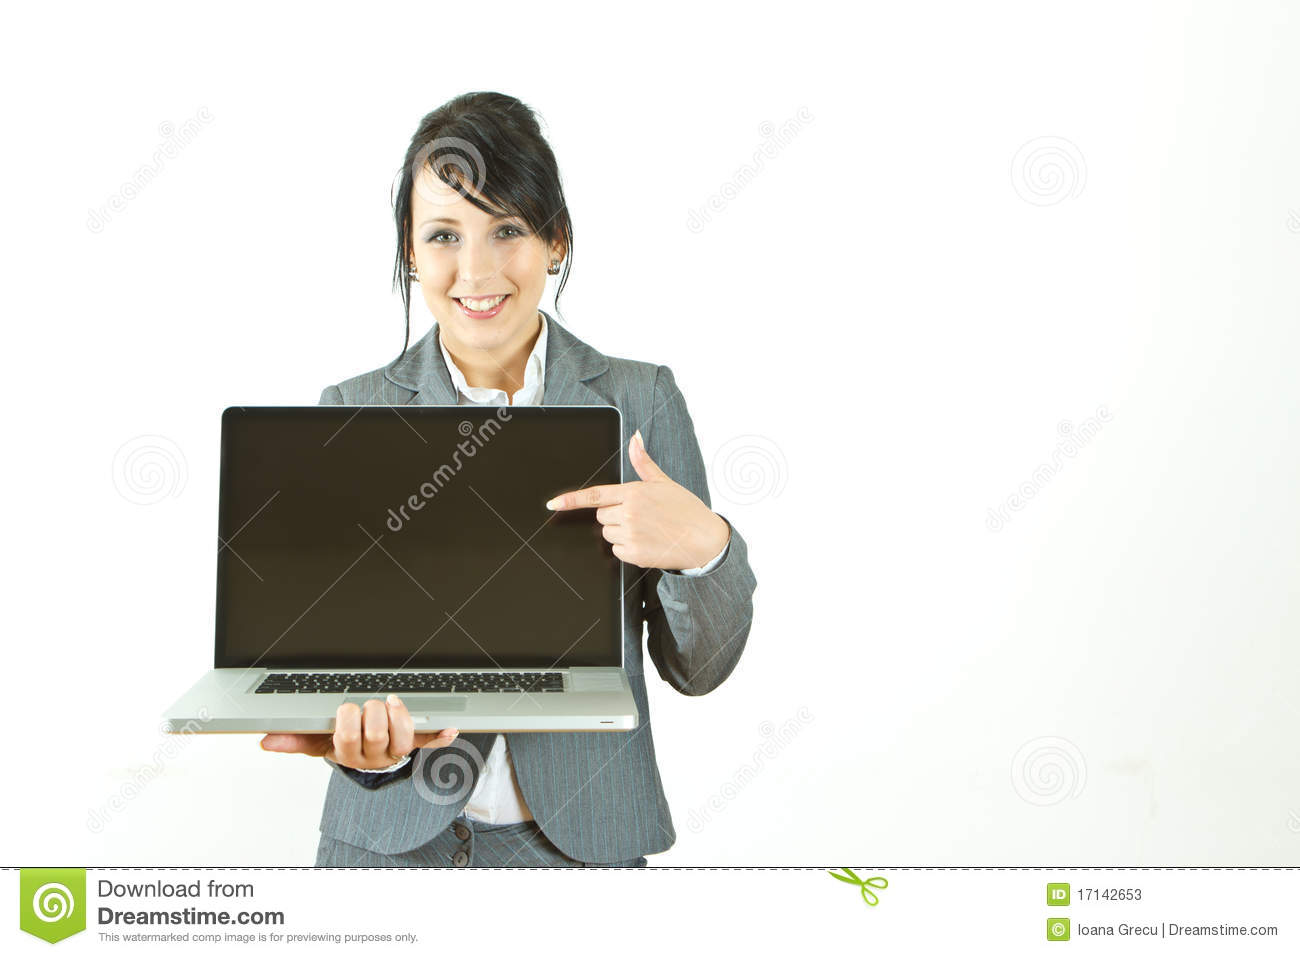 Smiling business woman pointing at laptop